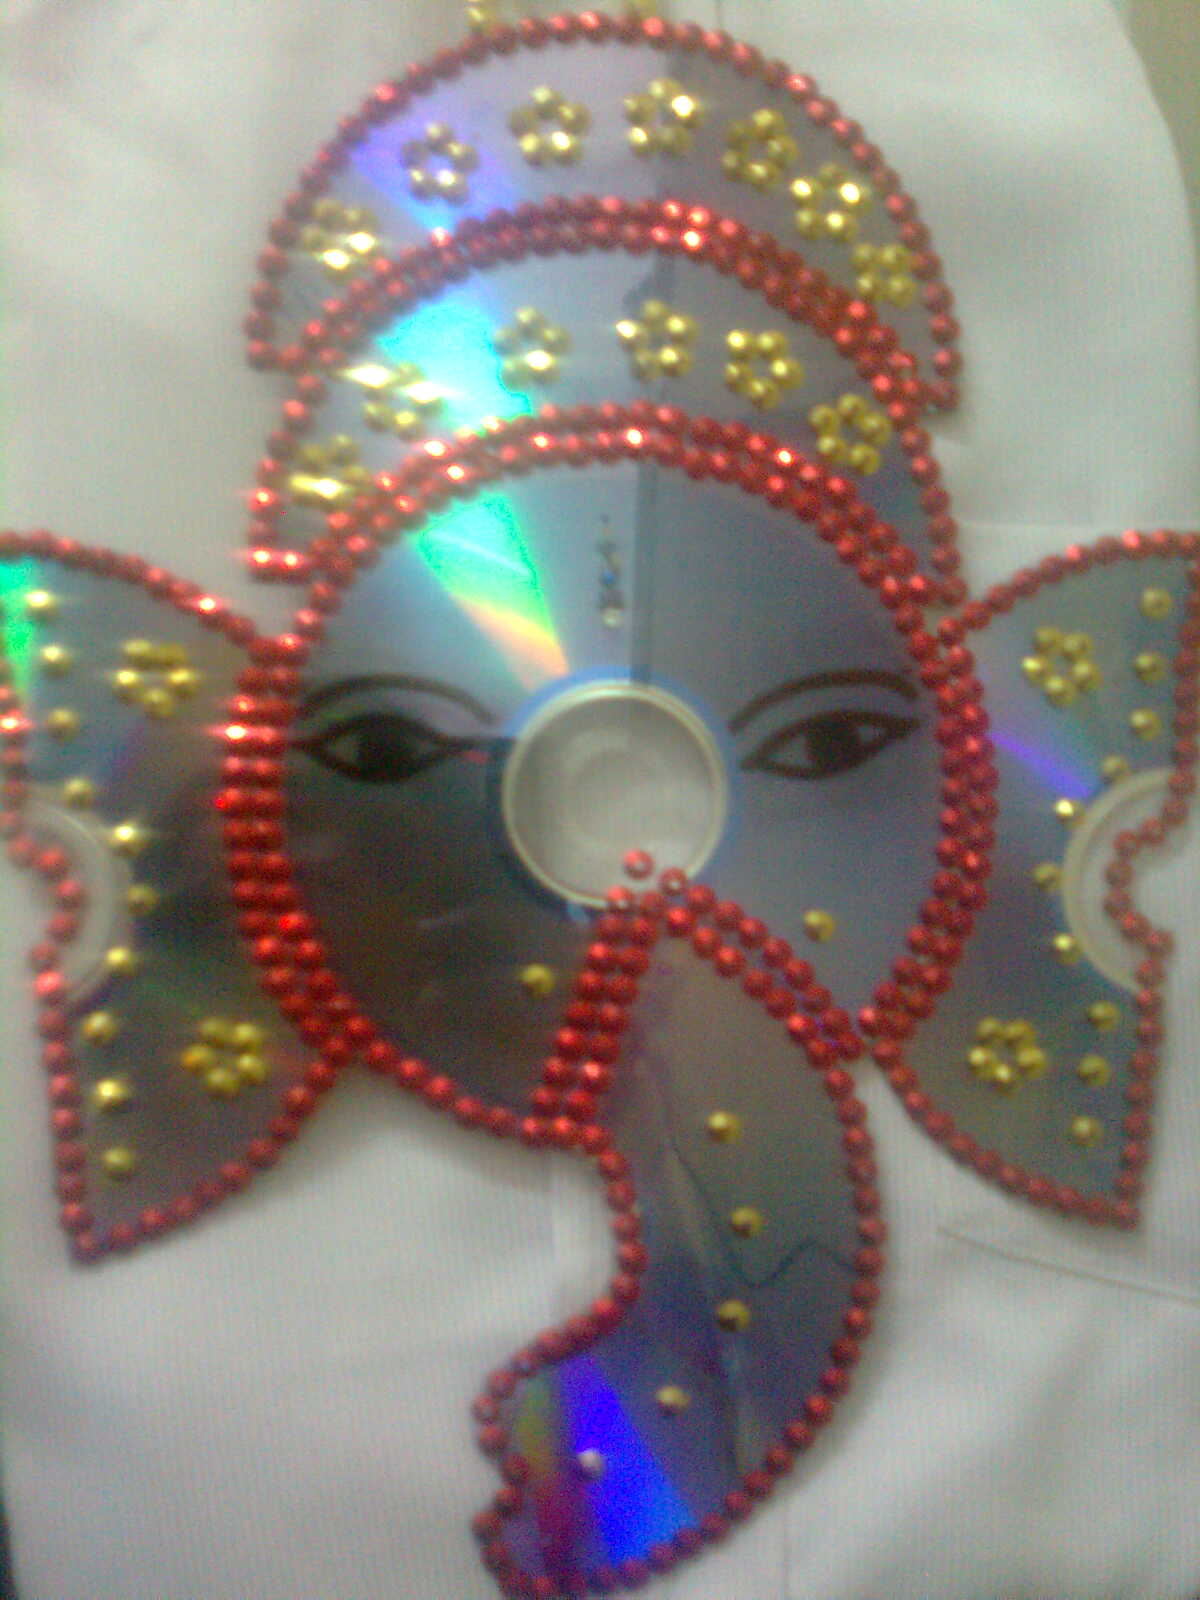 Maha arts crafts cd ganesh vinayagar for Waste things art